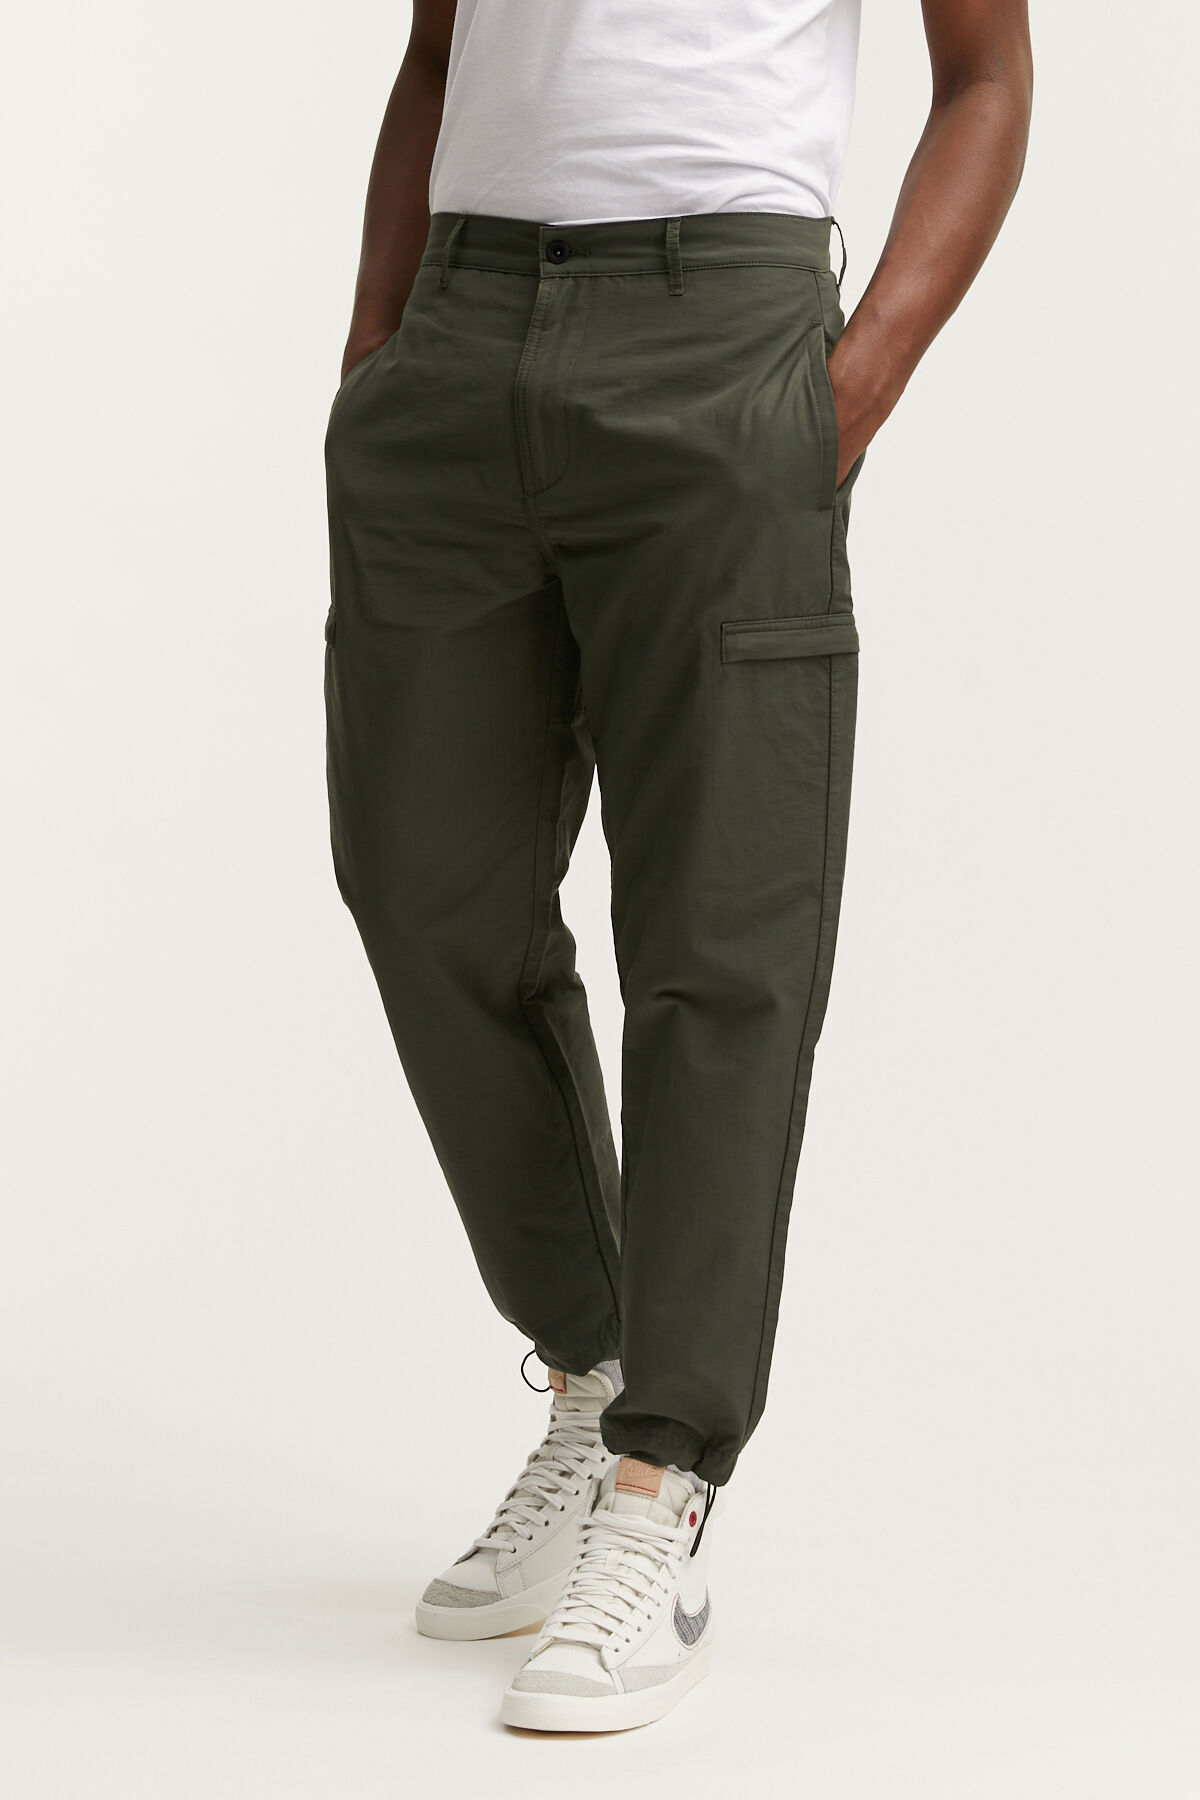 FRANCE CARGO PANT Cotton & Nylon Ripstop Fabric - Regular Fit